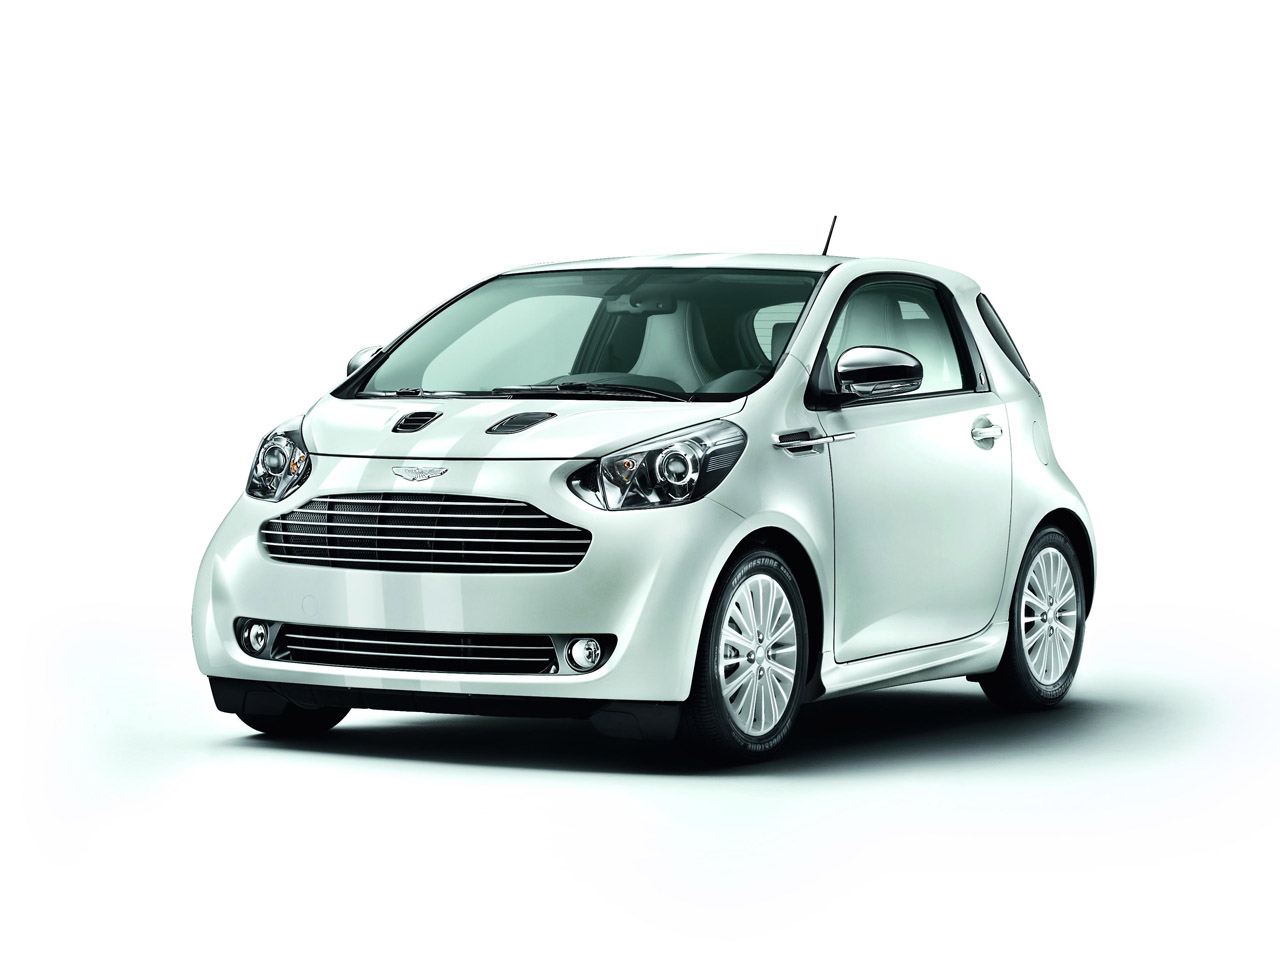 aston martin can 39 t build cygnet fast enough to keep up with demand autoblog. Black Bedroom Furniture Sets. Home Design Ideas